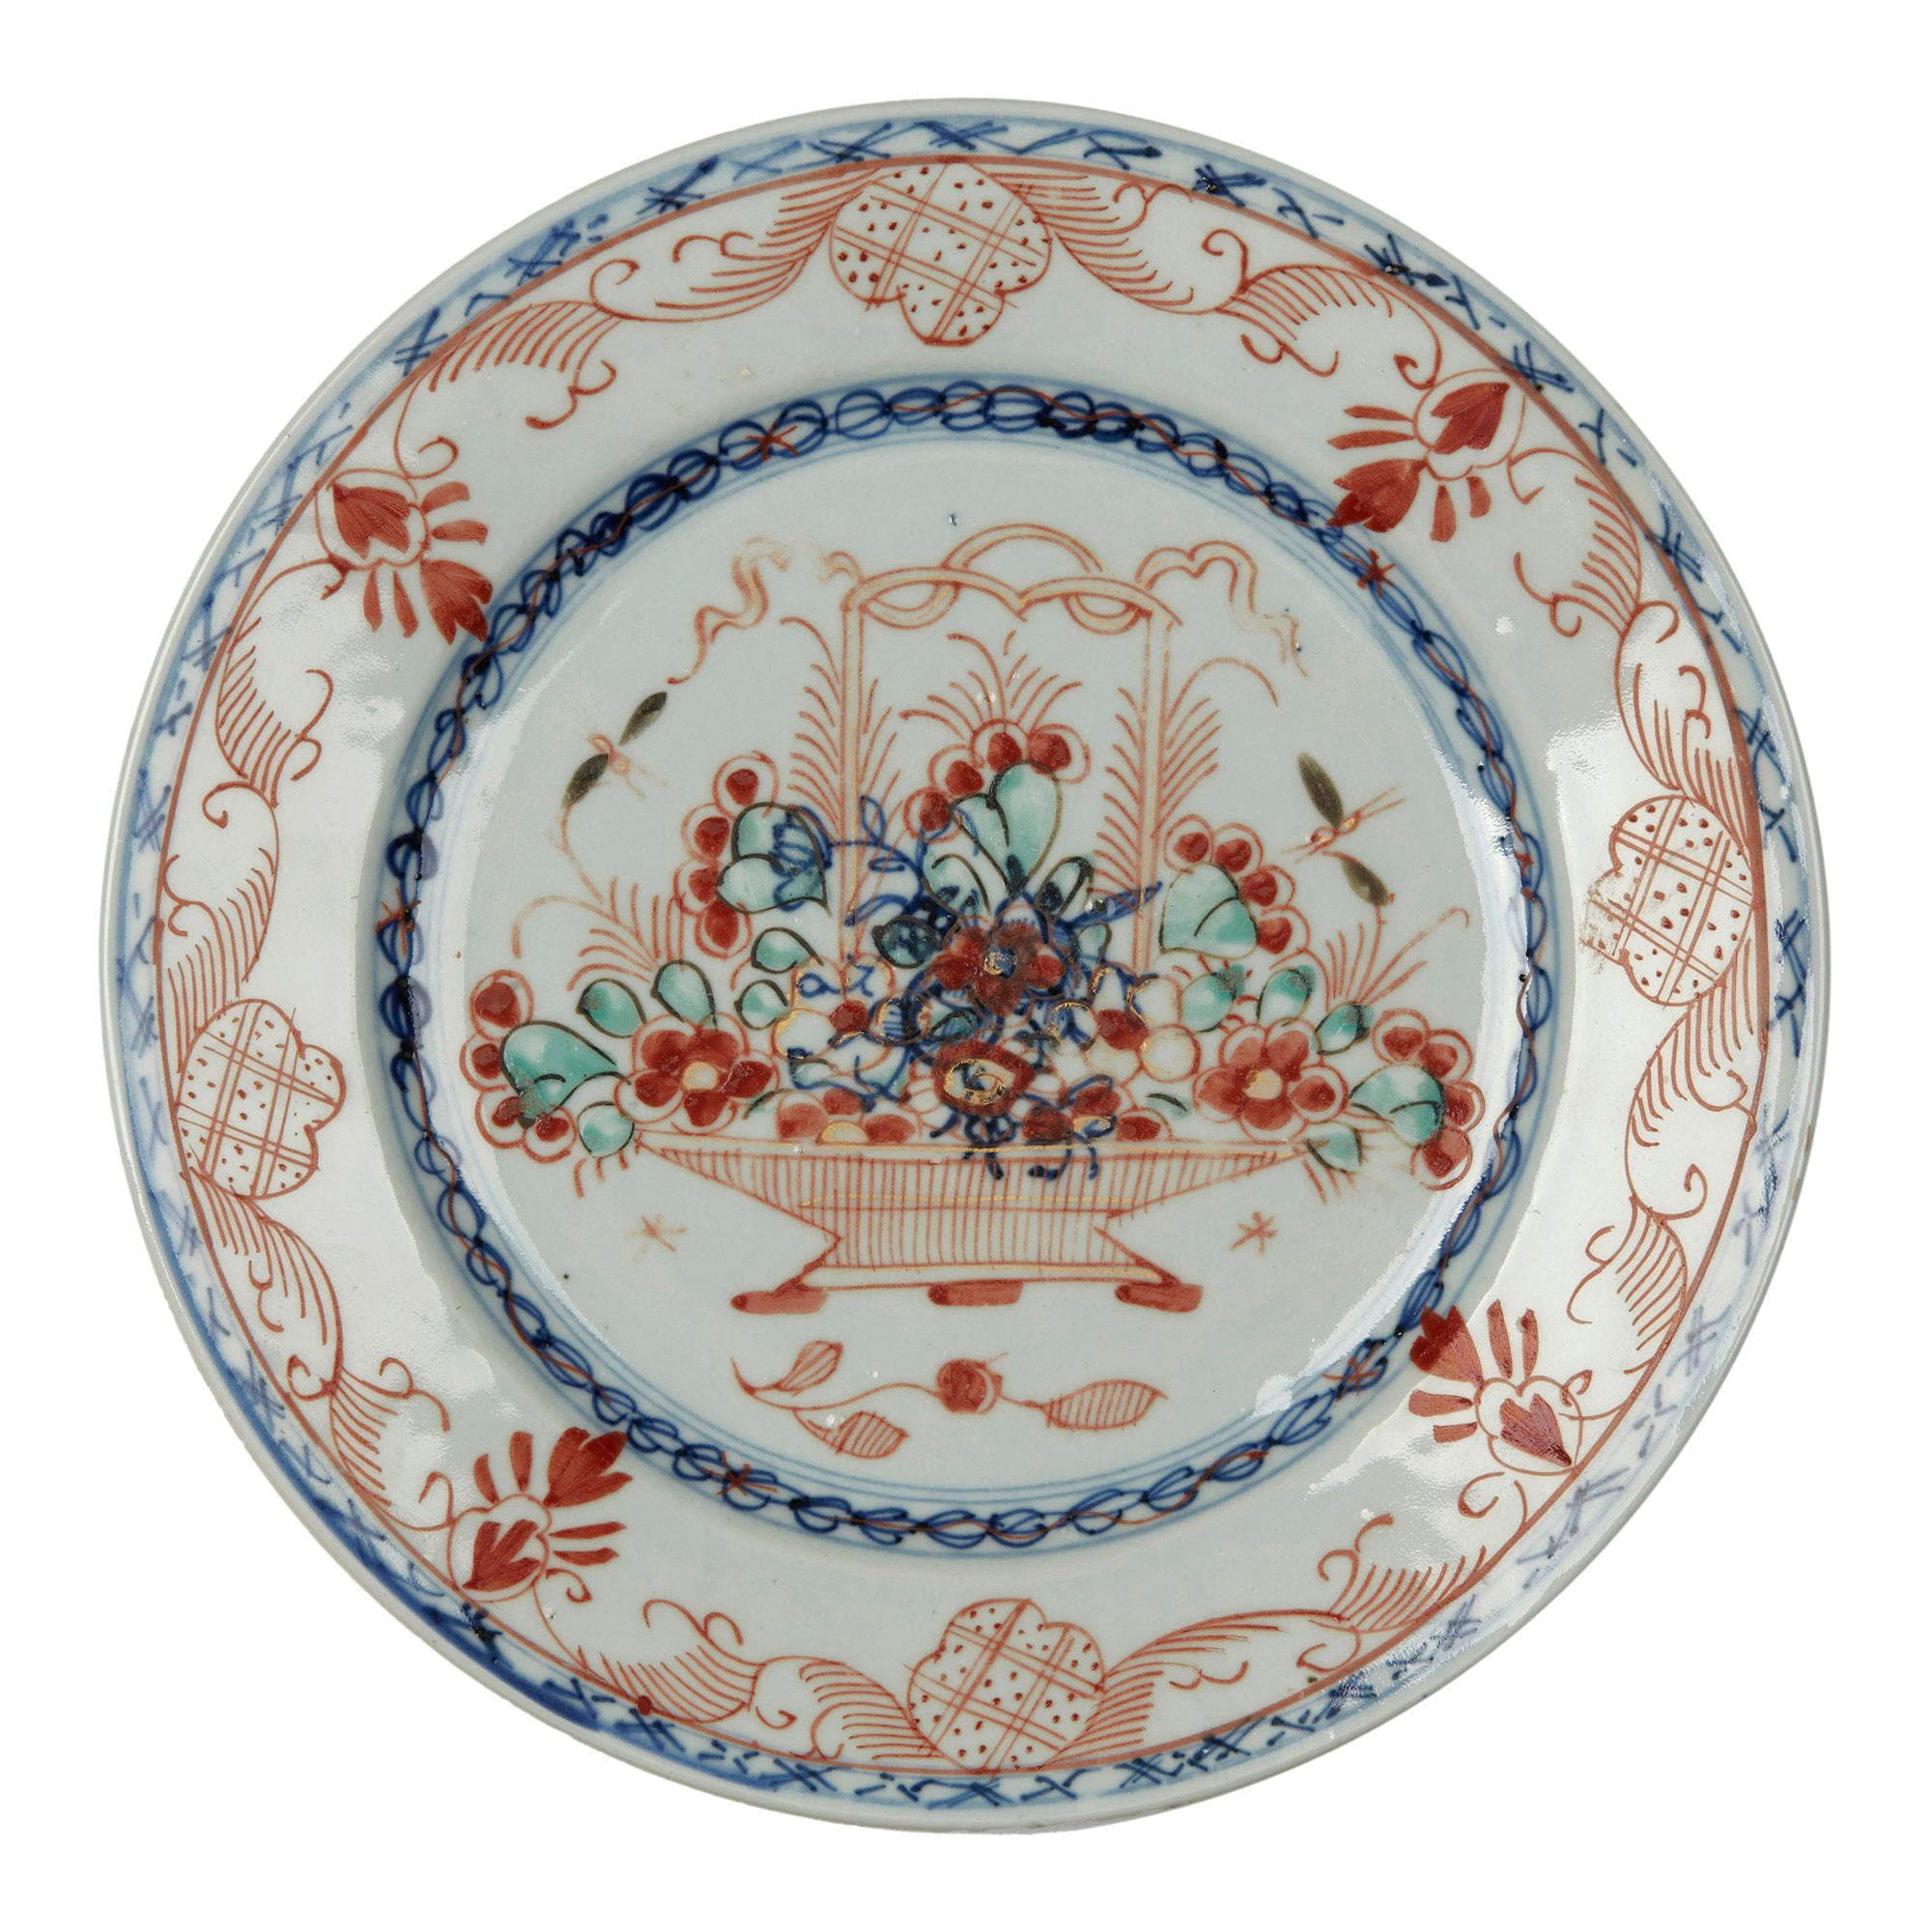 Chinese Qianlong Hand Painted Porcelain Plate, 18th Century